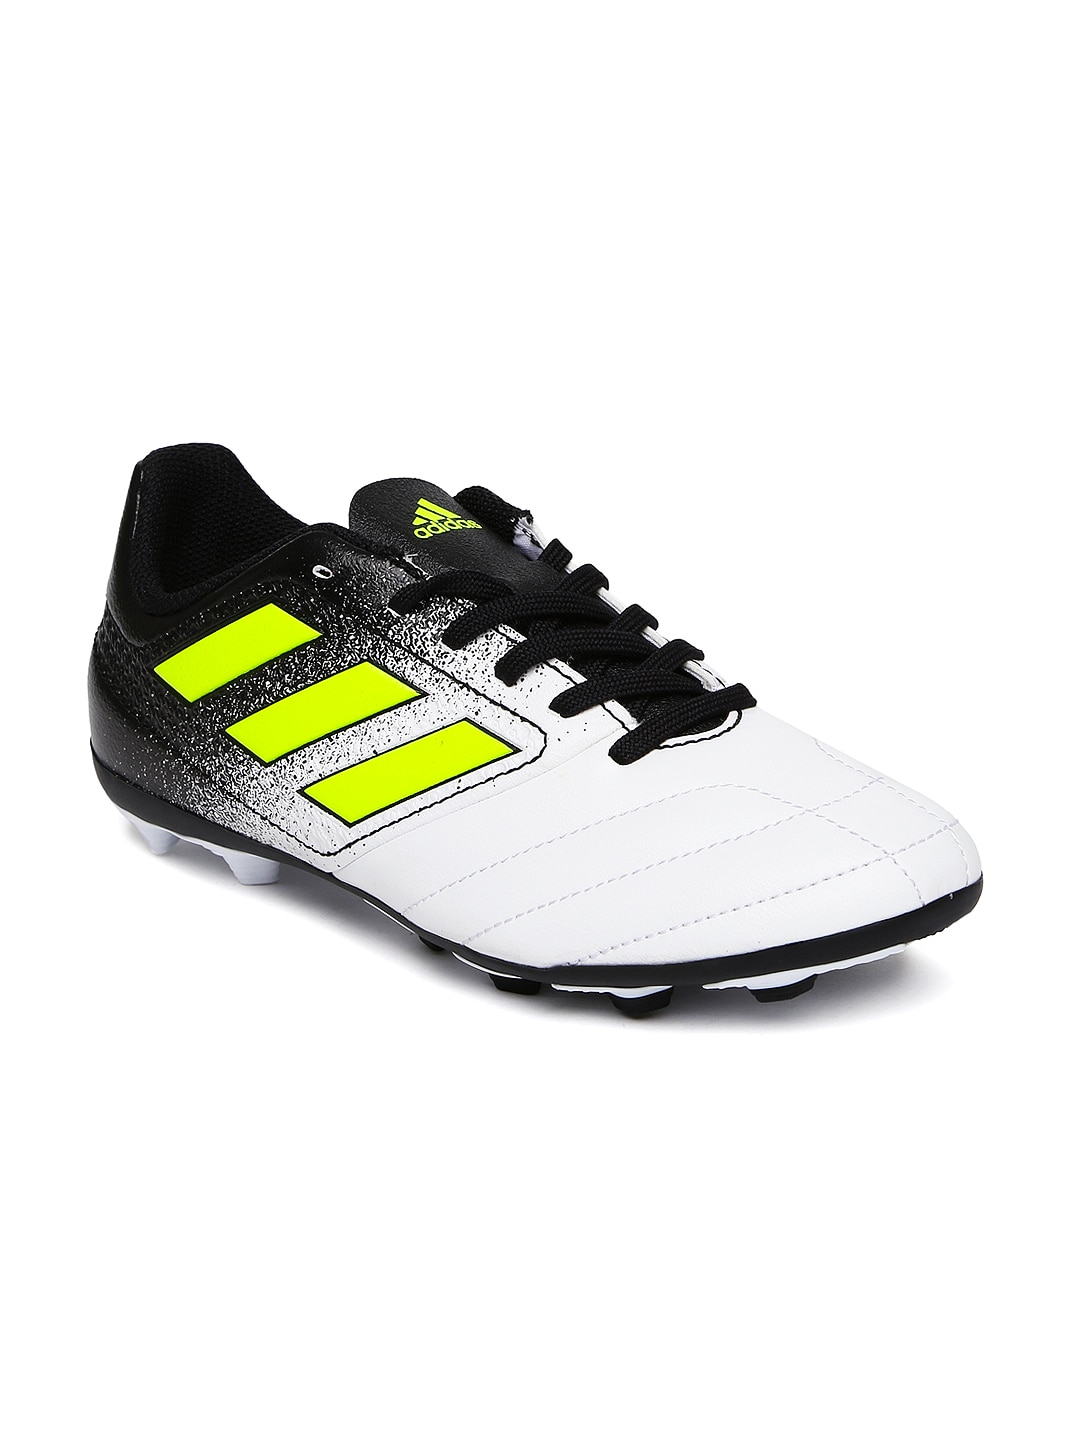 fdfb5ec86eee Adidas Candies Wristbands Sports Shoes - Buy Adidas Candies Wristbands Sports  Shoes online in India